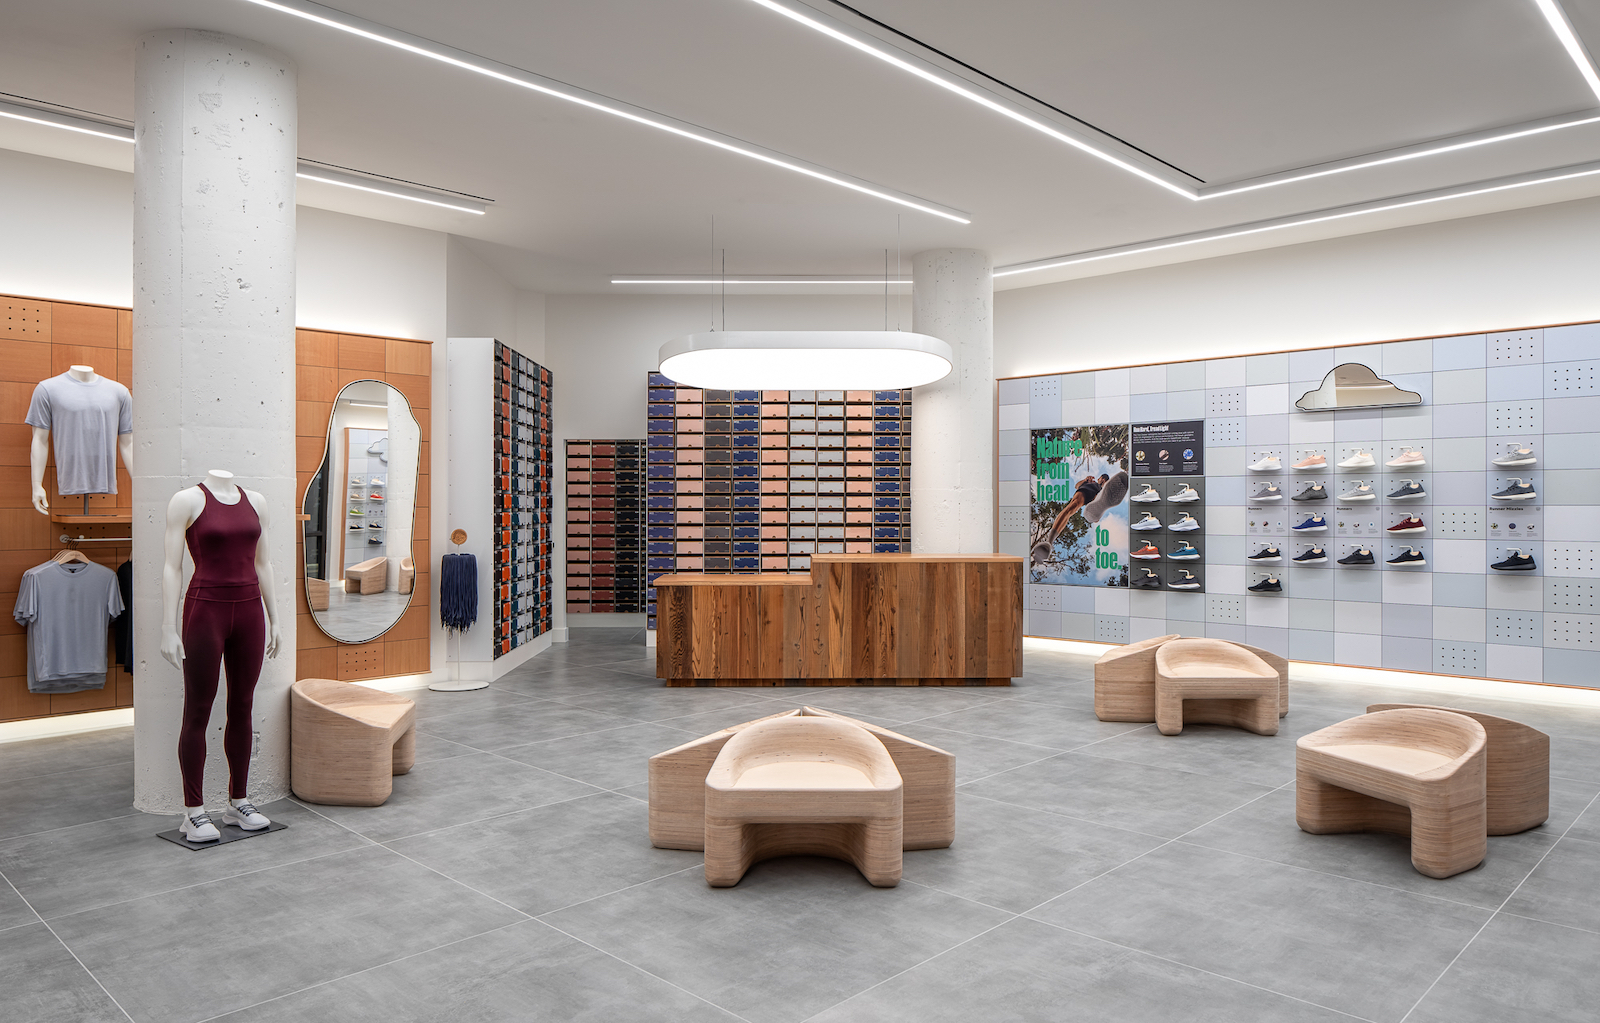 Allbirds debuted its newest retail store and community center experience in Atlanta's Ponce City Market.